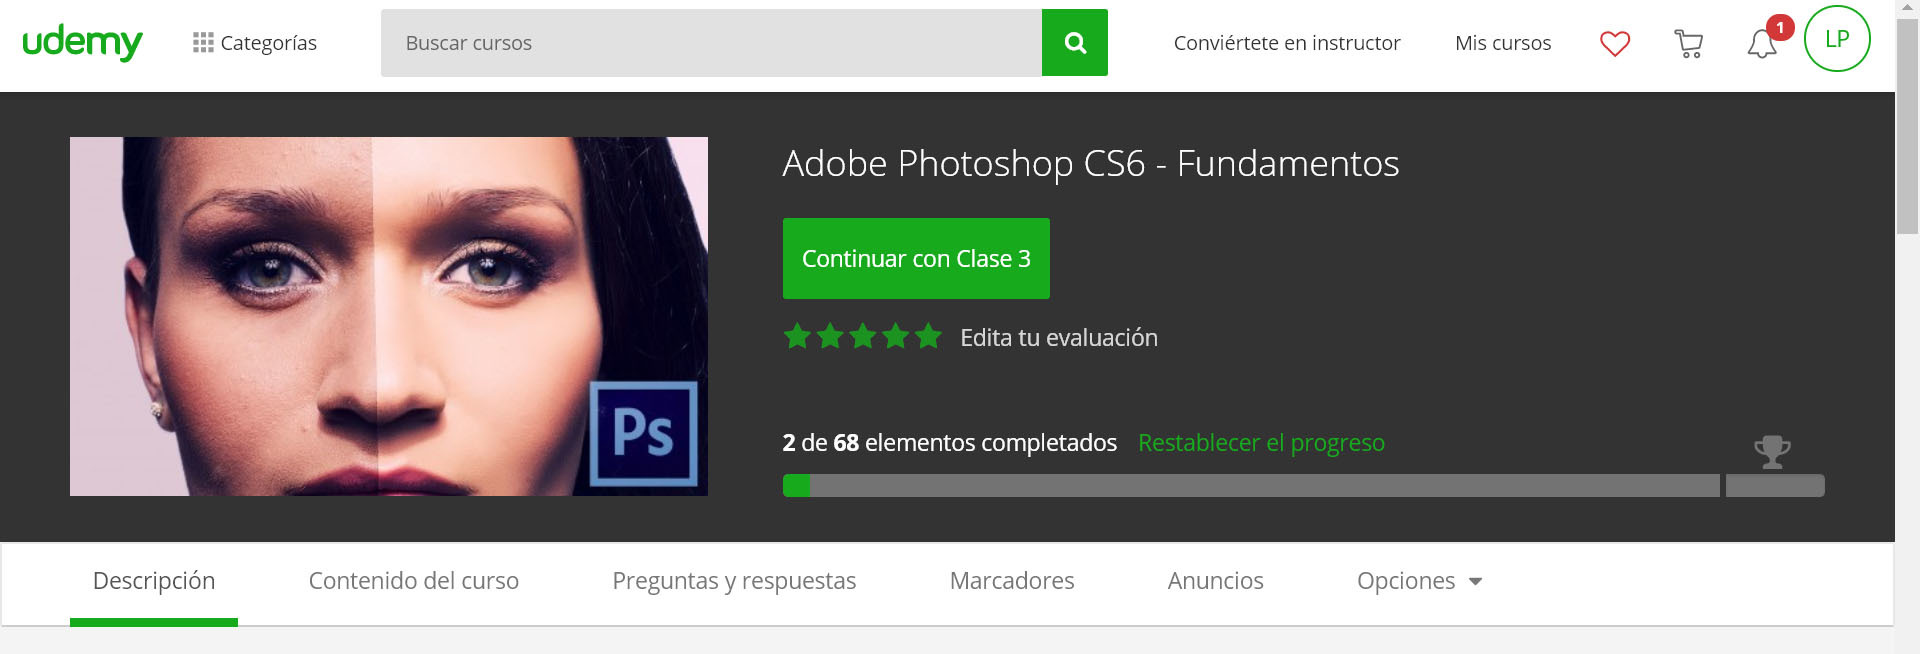 Curso gratis Adobe Photoshop CS6 con certificado